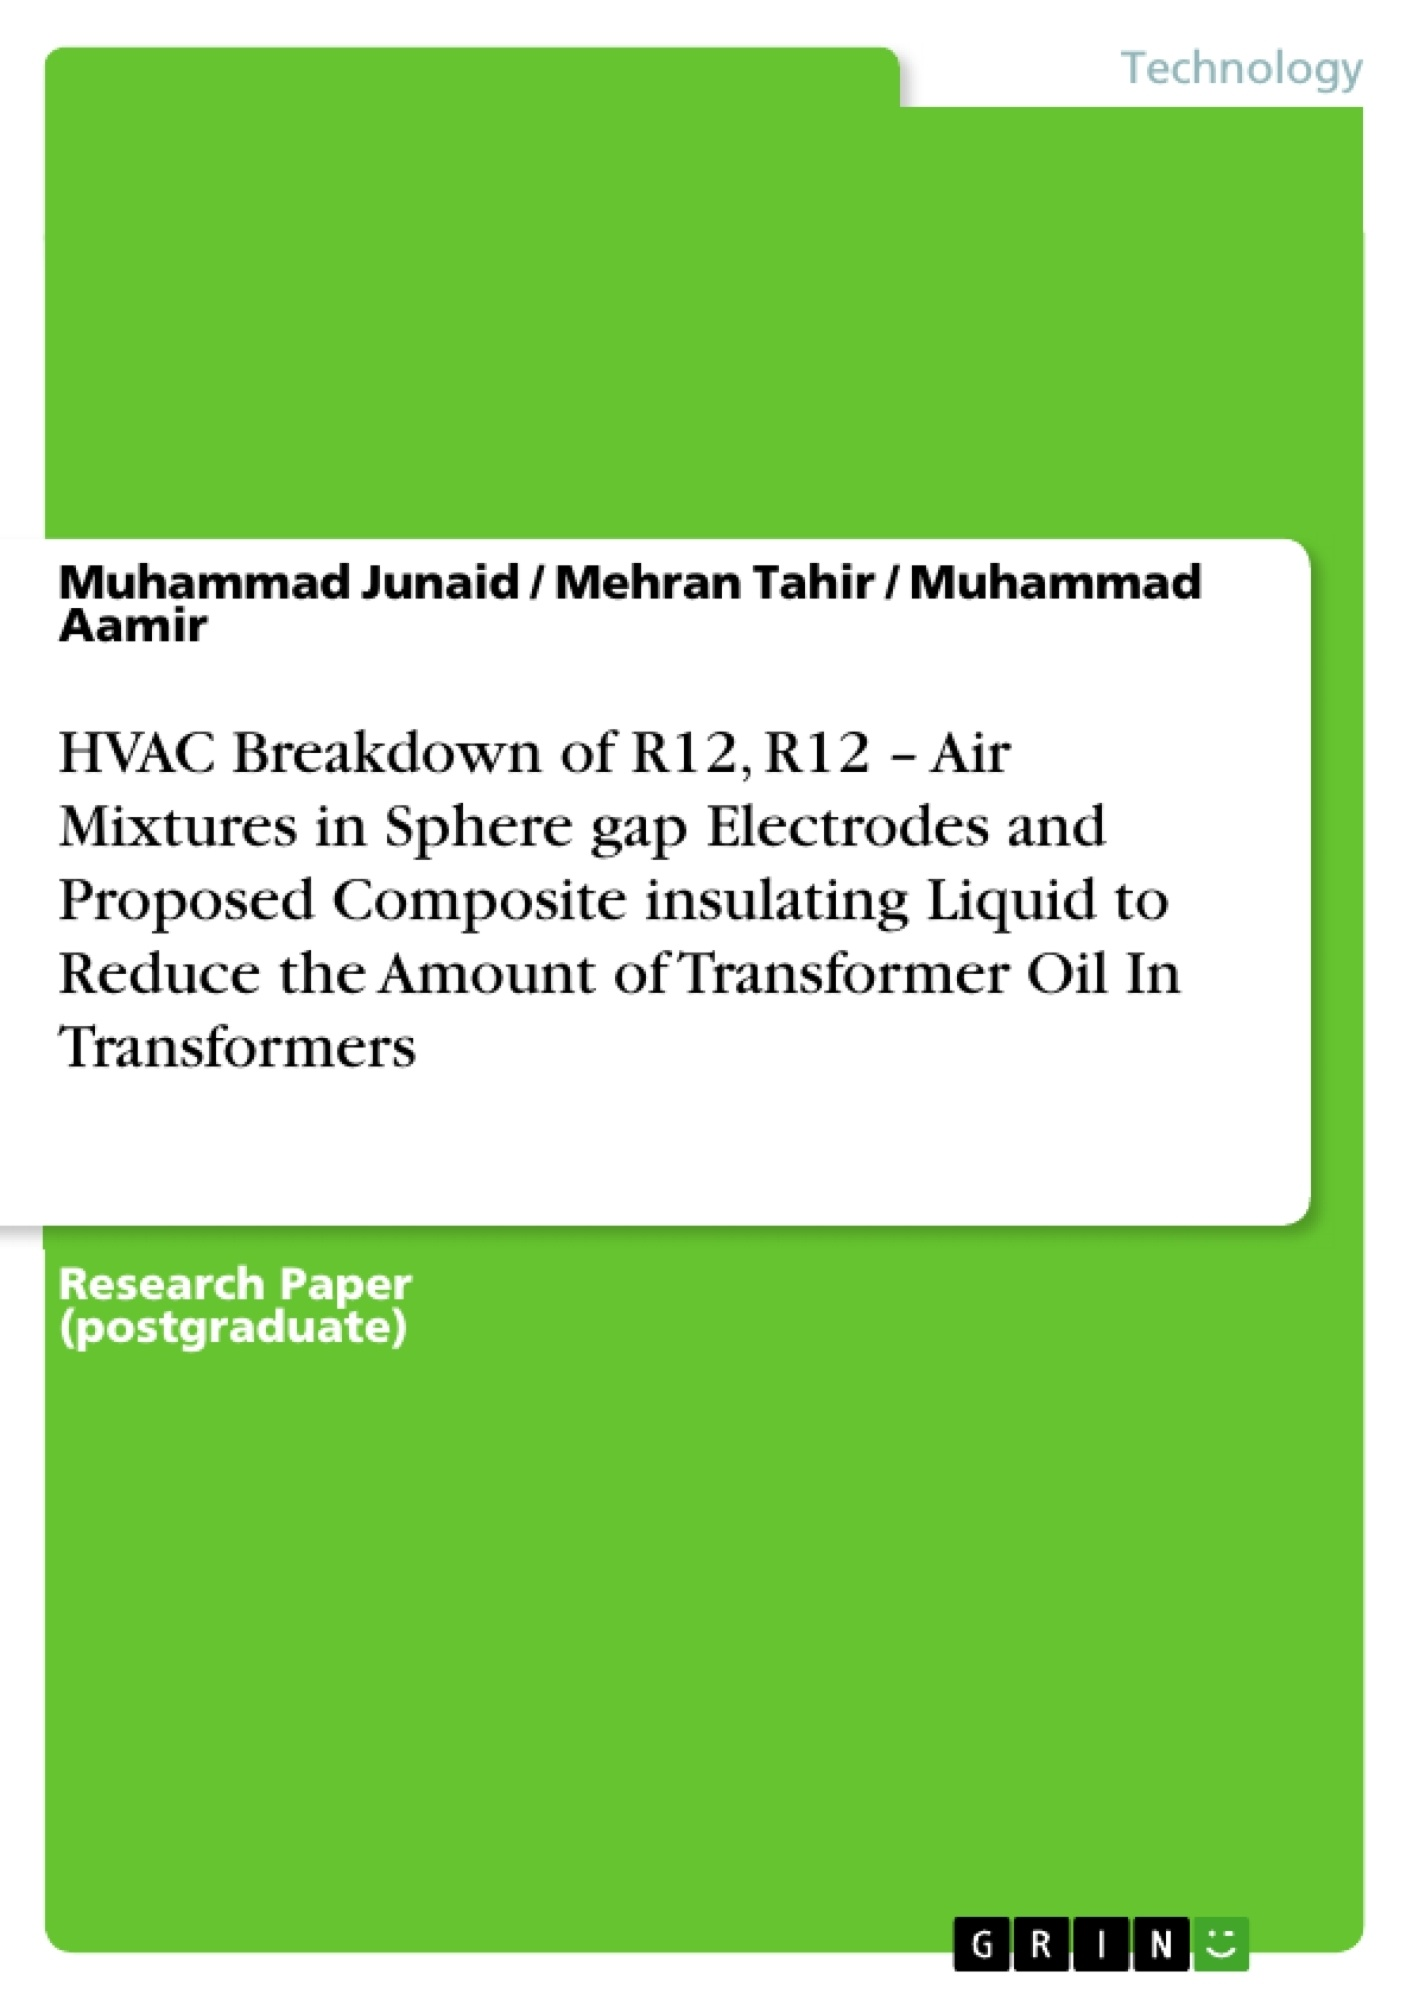 Title: HVAC Breakdown of R12, R12 – Air Mixtures in Sphere gap Electrodes and Proposed Composite insulating Liquid to Reduce the Amount of Transformer Oil In Transformers